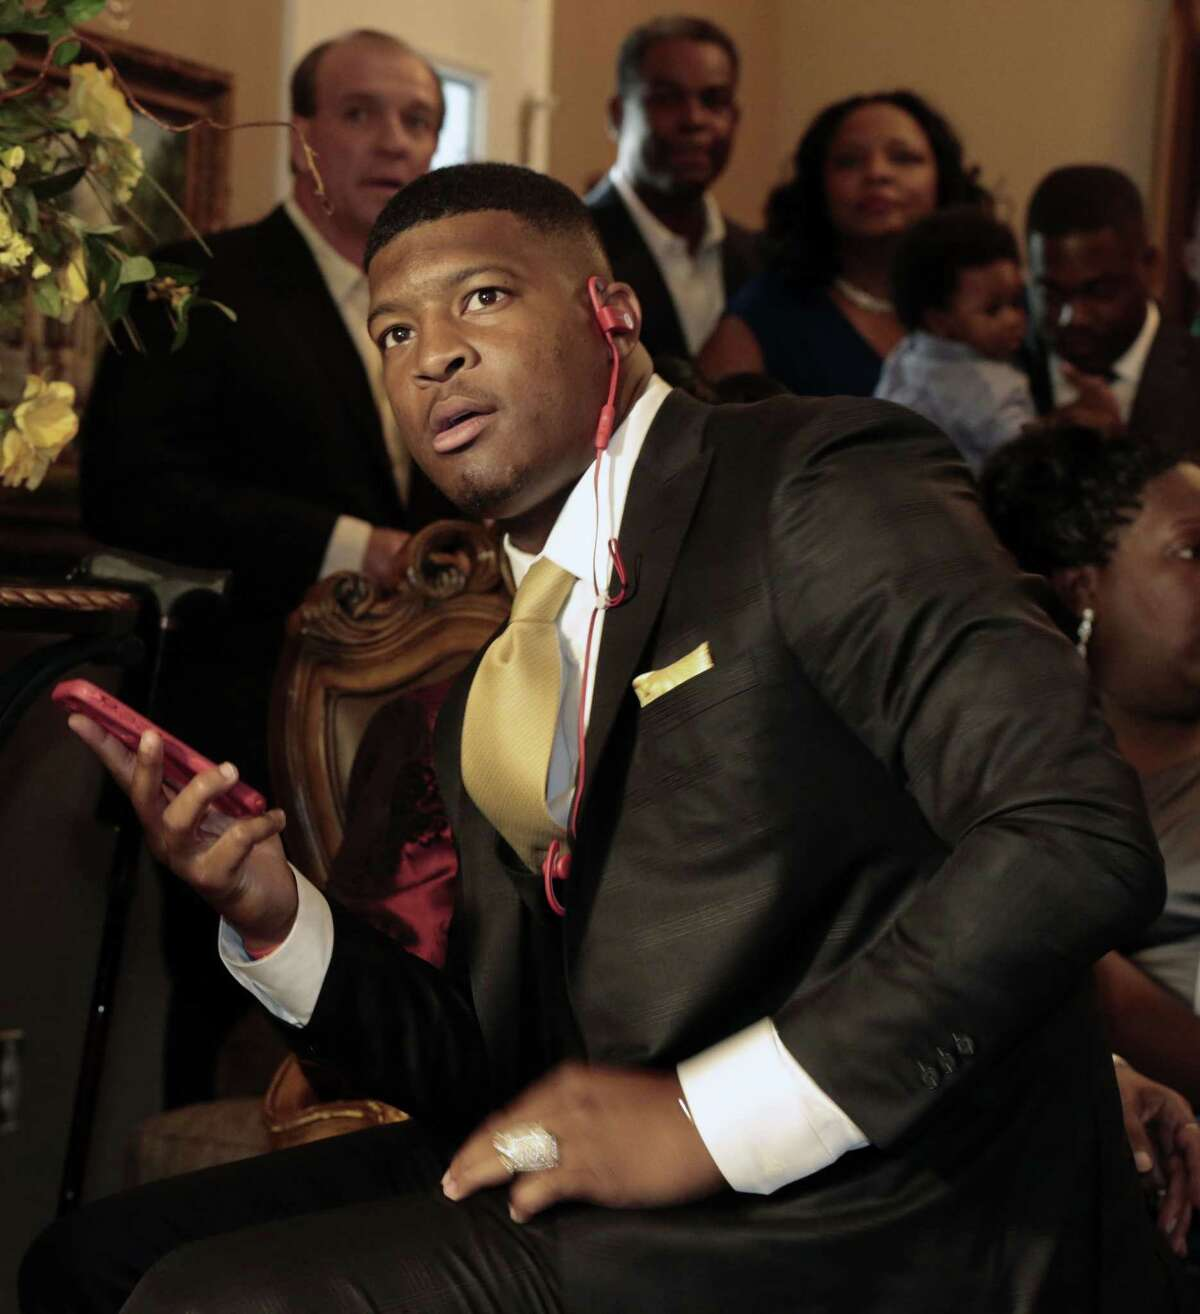 Jameis Winston takes the call from Tampa Bay Buccaneers Thursday in Bessemer, Ala. The Bucs put an end to months of speculation by selecting the talented-but-troubled signal caller, who won the Heisman Trophy in 2013.